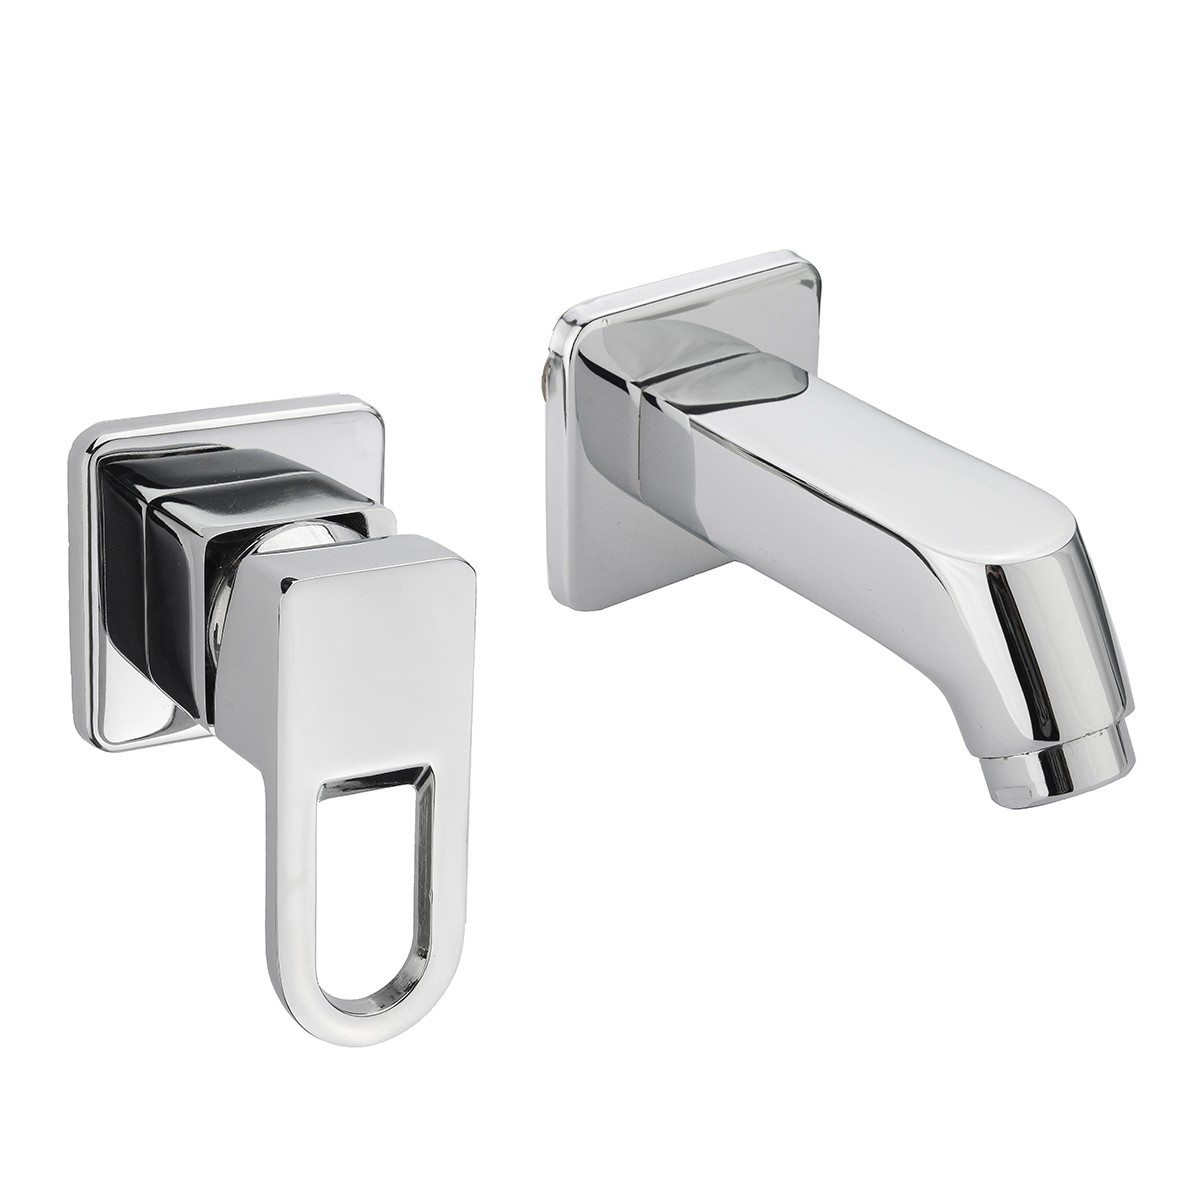 Modern Hot Cold Water Mixer Tap Wall Mounted Bathroom